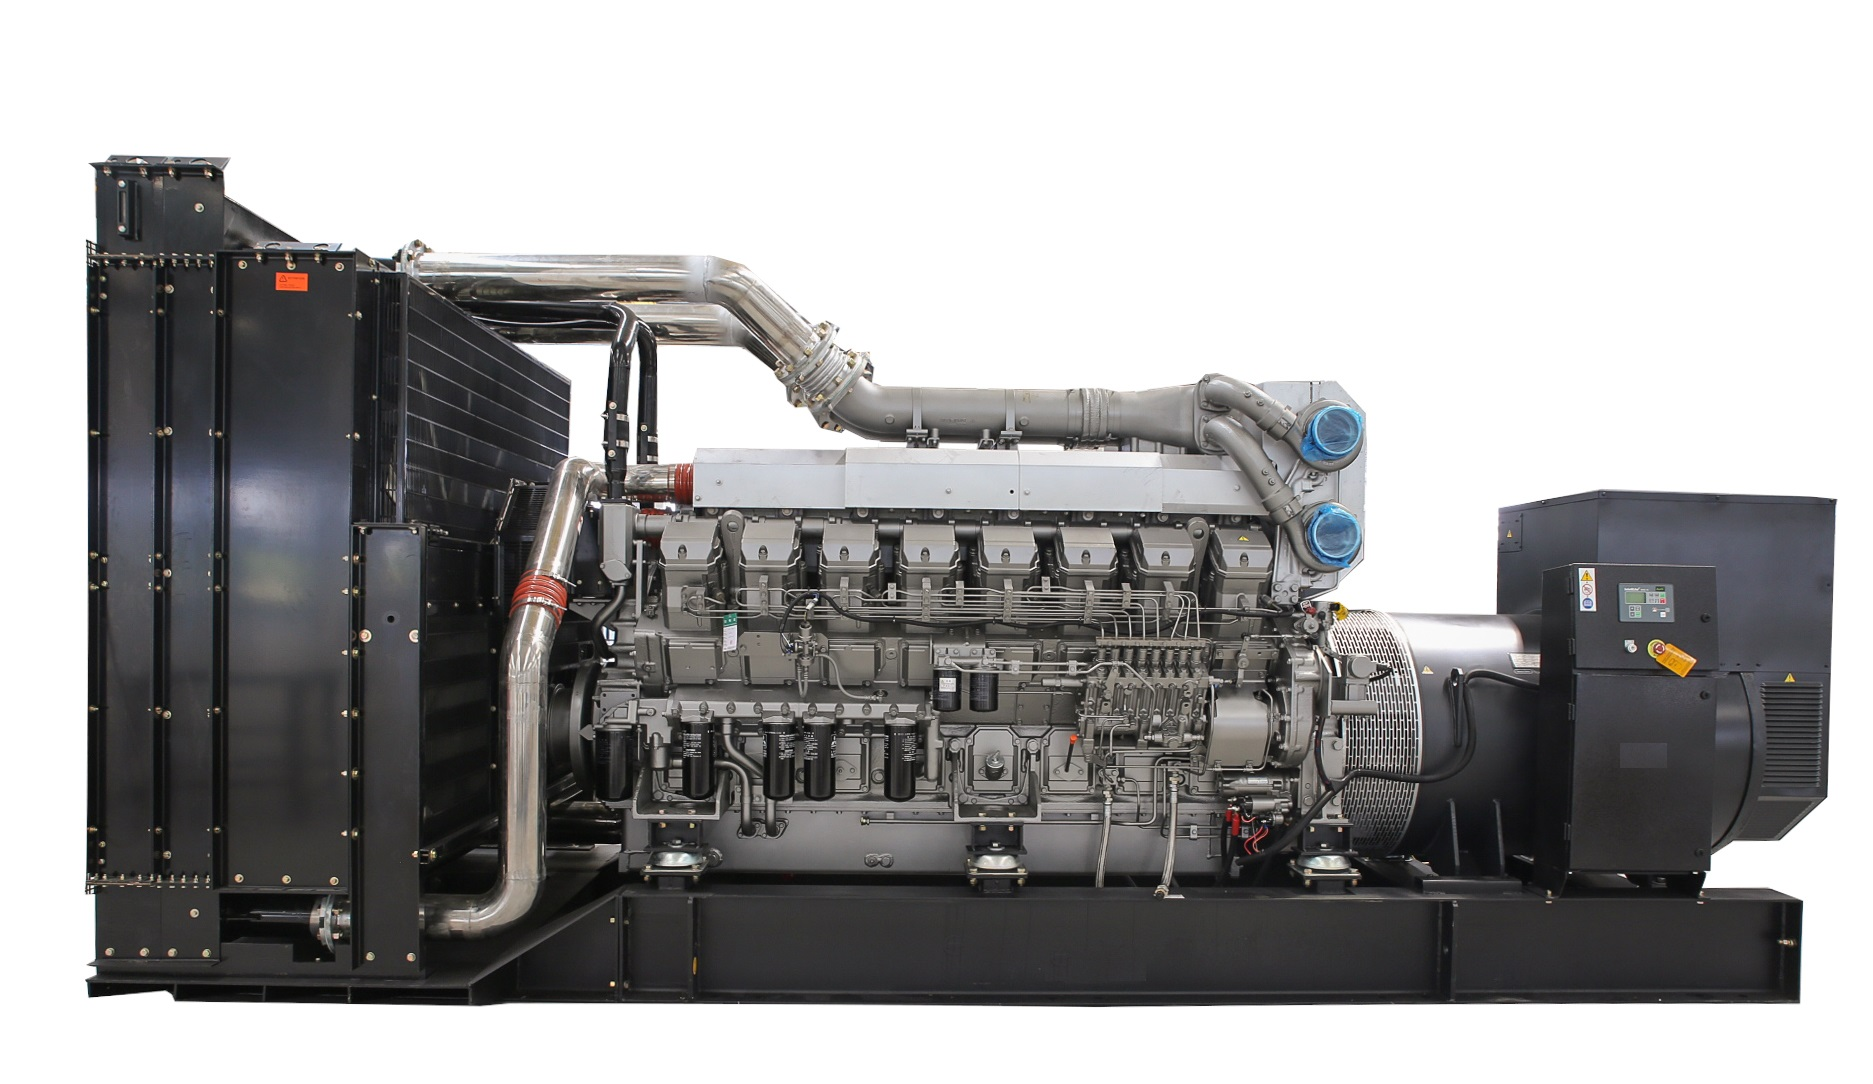 Diesel Generator Cooperated With Mitsubishi Engines M Series Wiring Diagram Ss Sm Select Heavy Duty Engine For Its Low Capitsl Investment And Reliable Solution High Power Emergency Standby